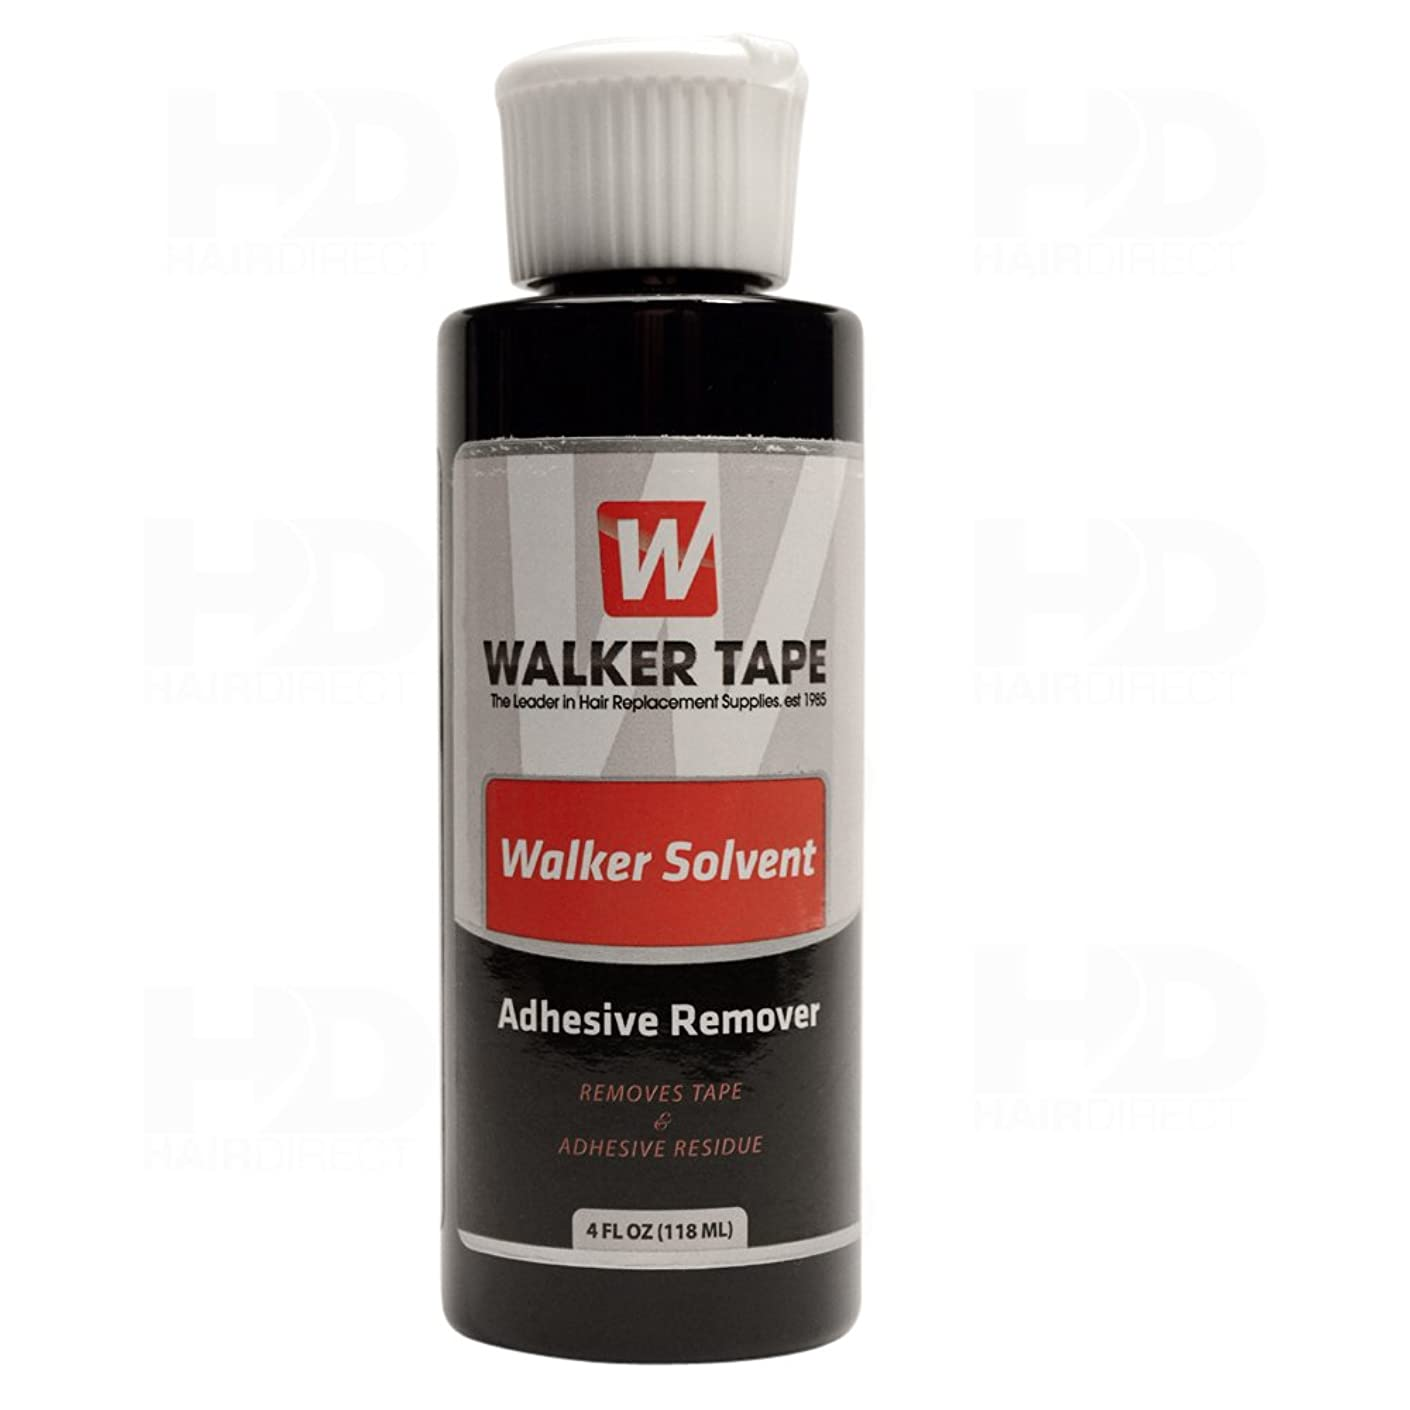 Walker Solvent - Also Known As and Same Product As Weft Release